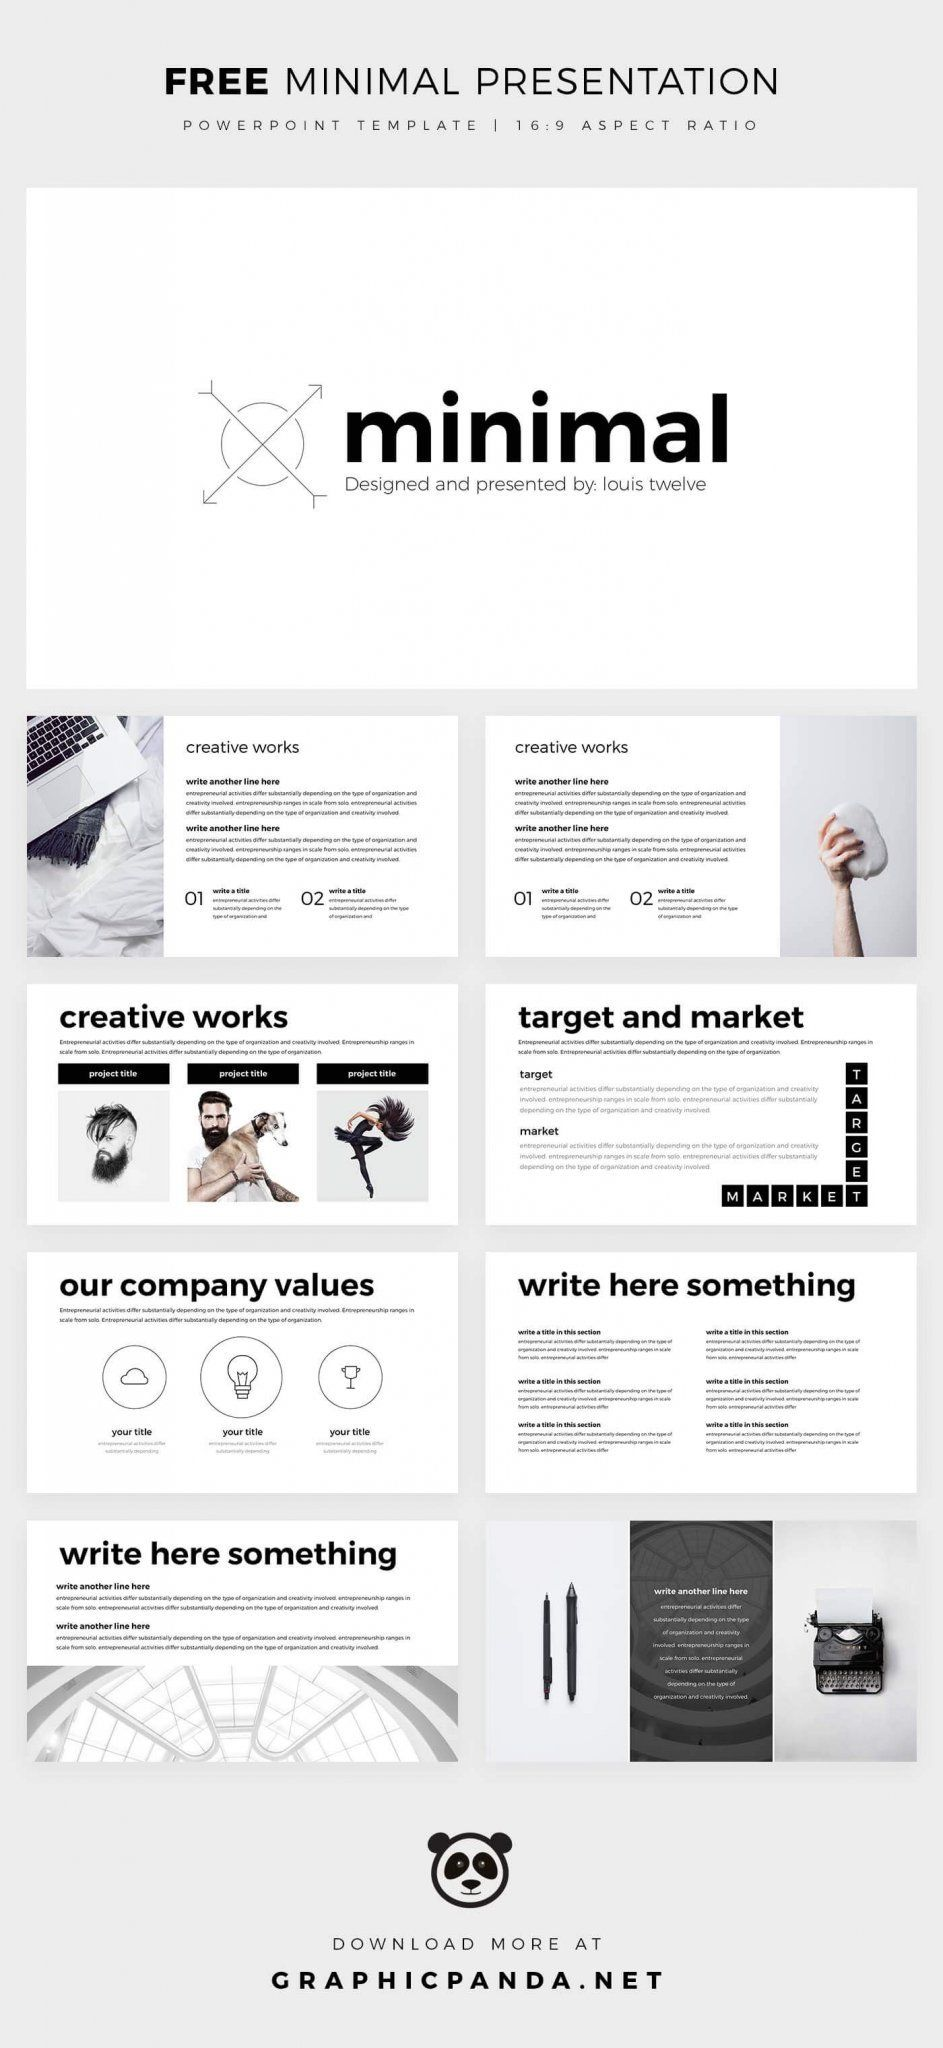 Free Minimal Powerpoint Free Keynote Template Simple